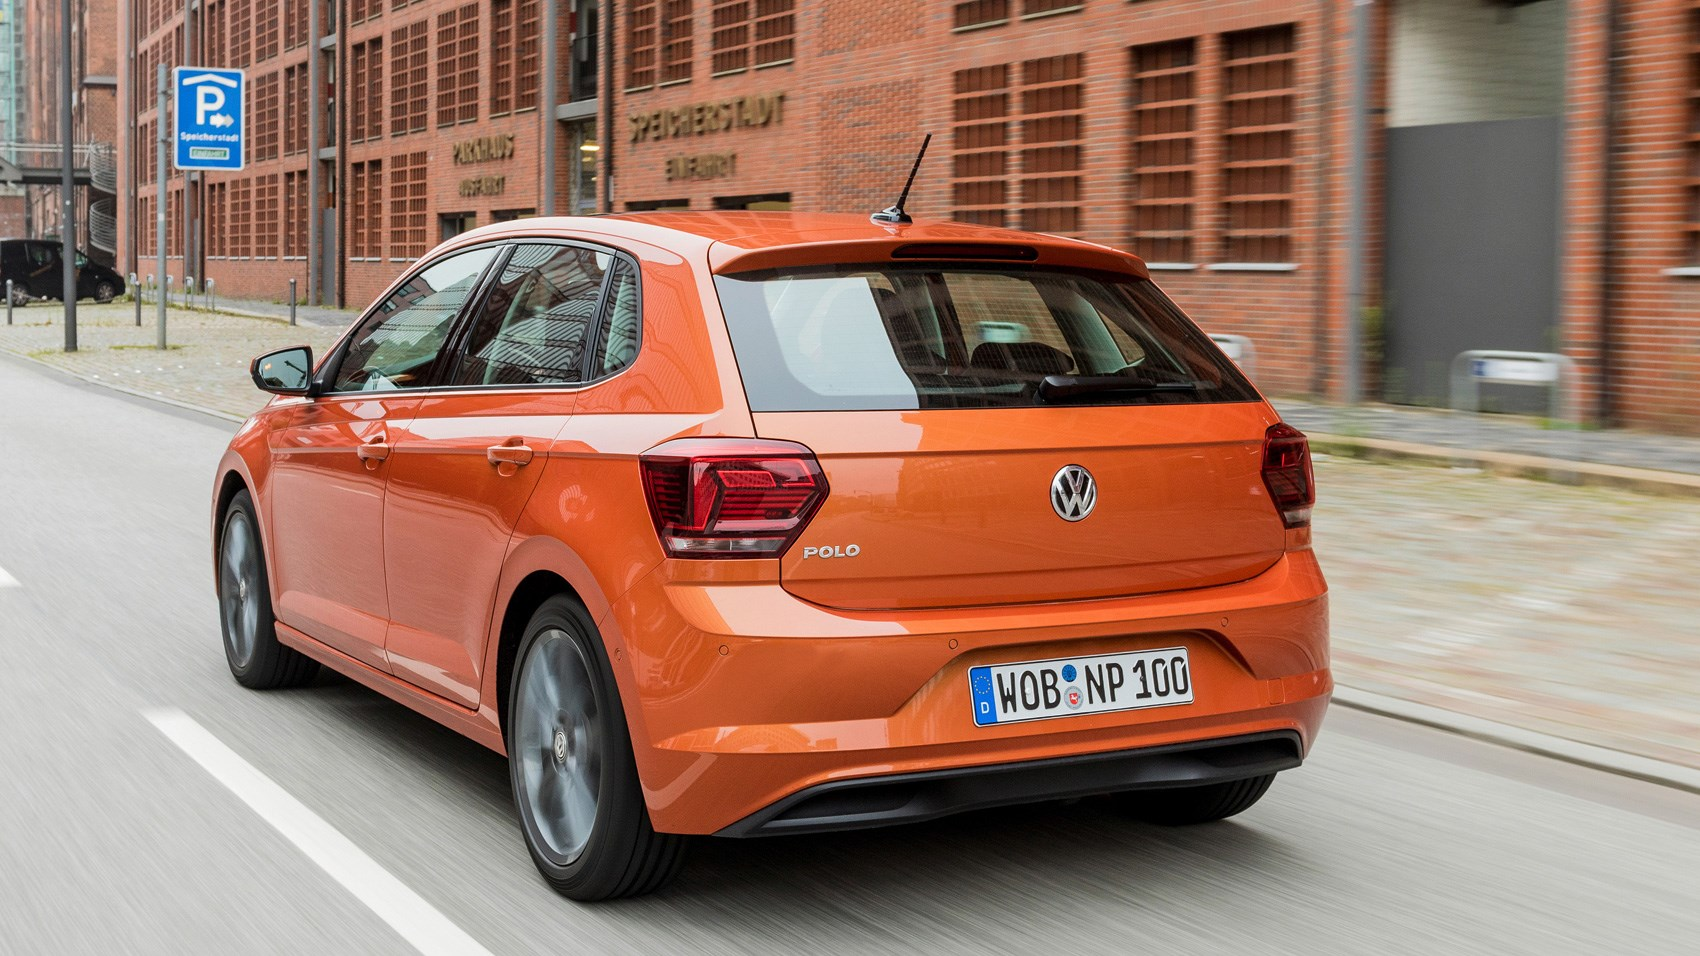 Volkswagen polo photo - 10